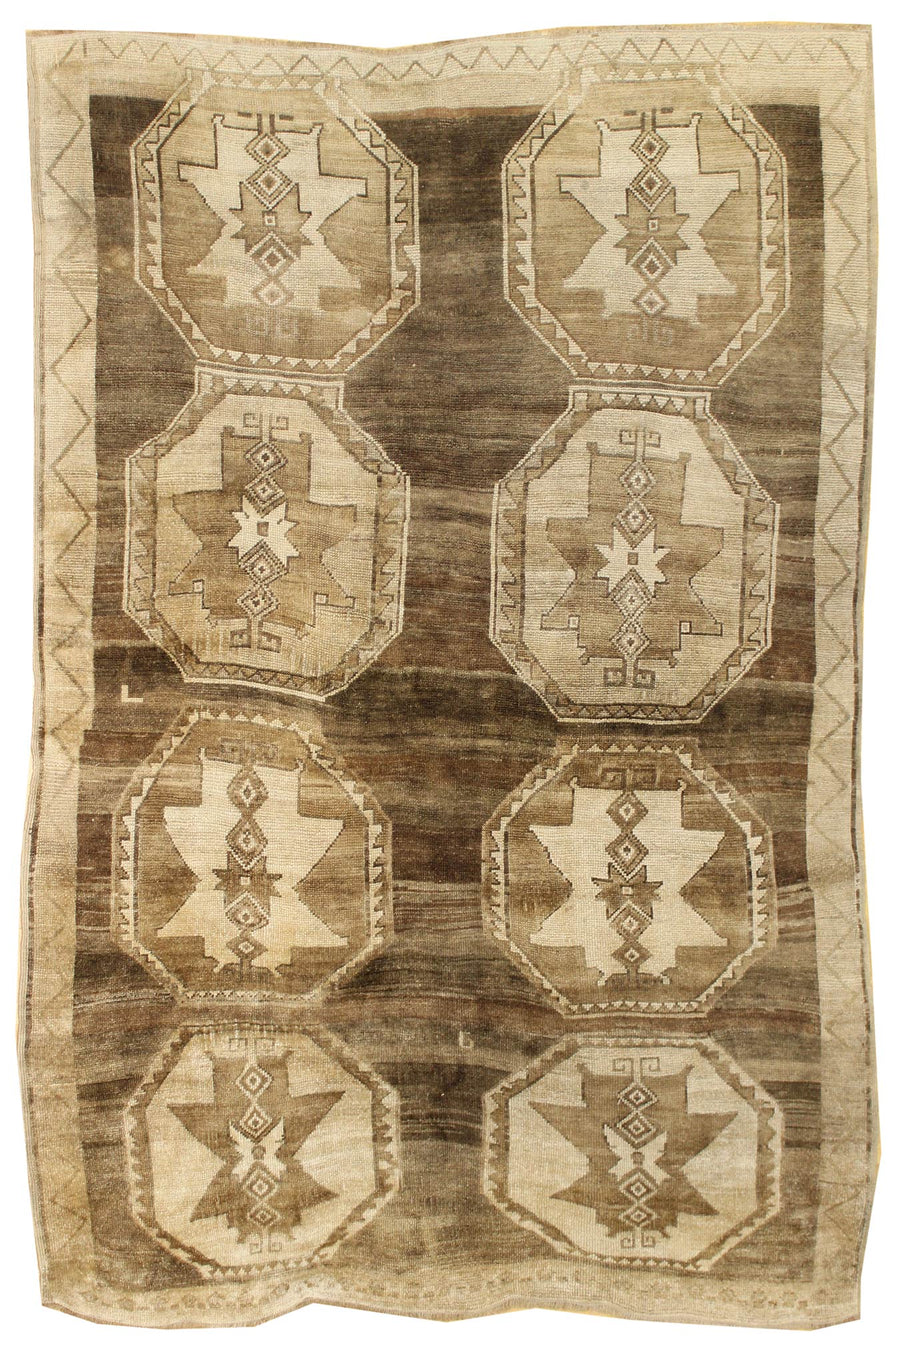 KARS HANDKNOTTED RUG, 54379